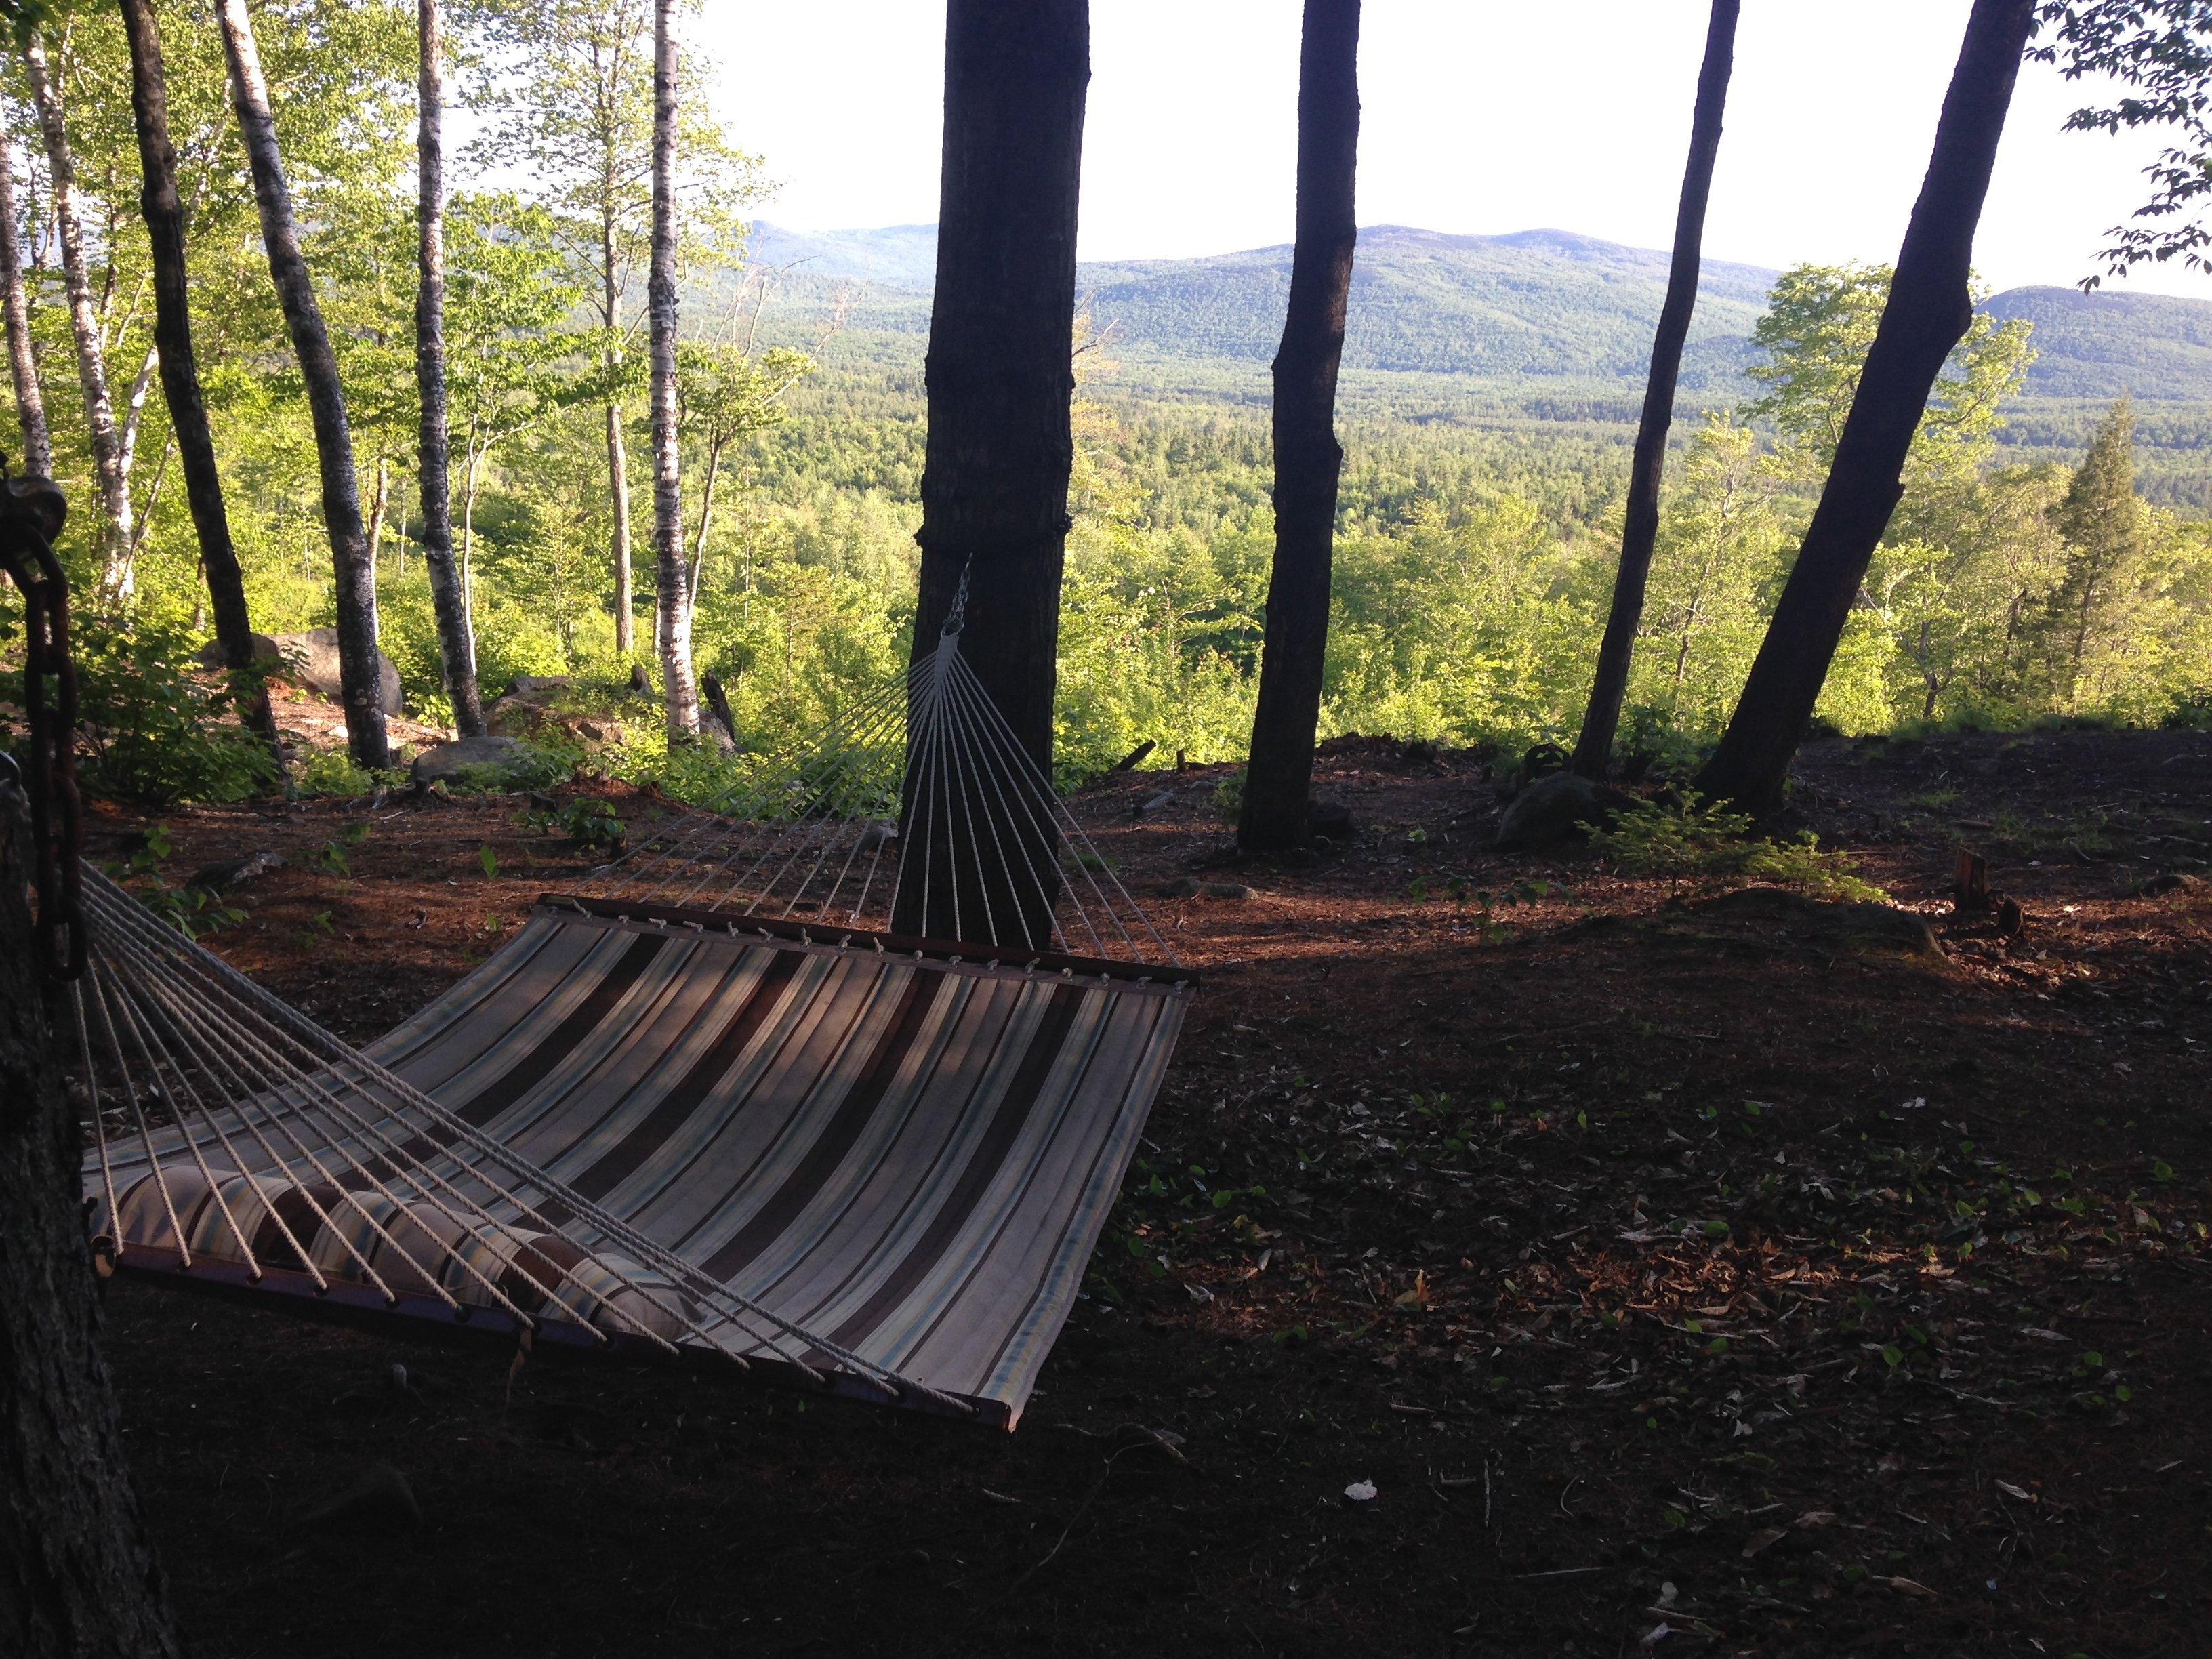 Hammock with your name on it